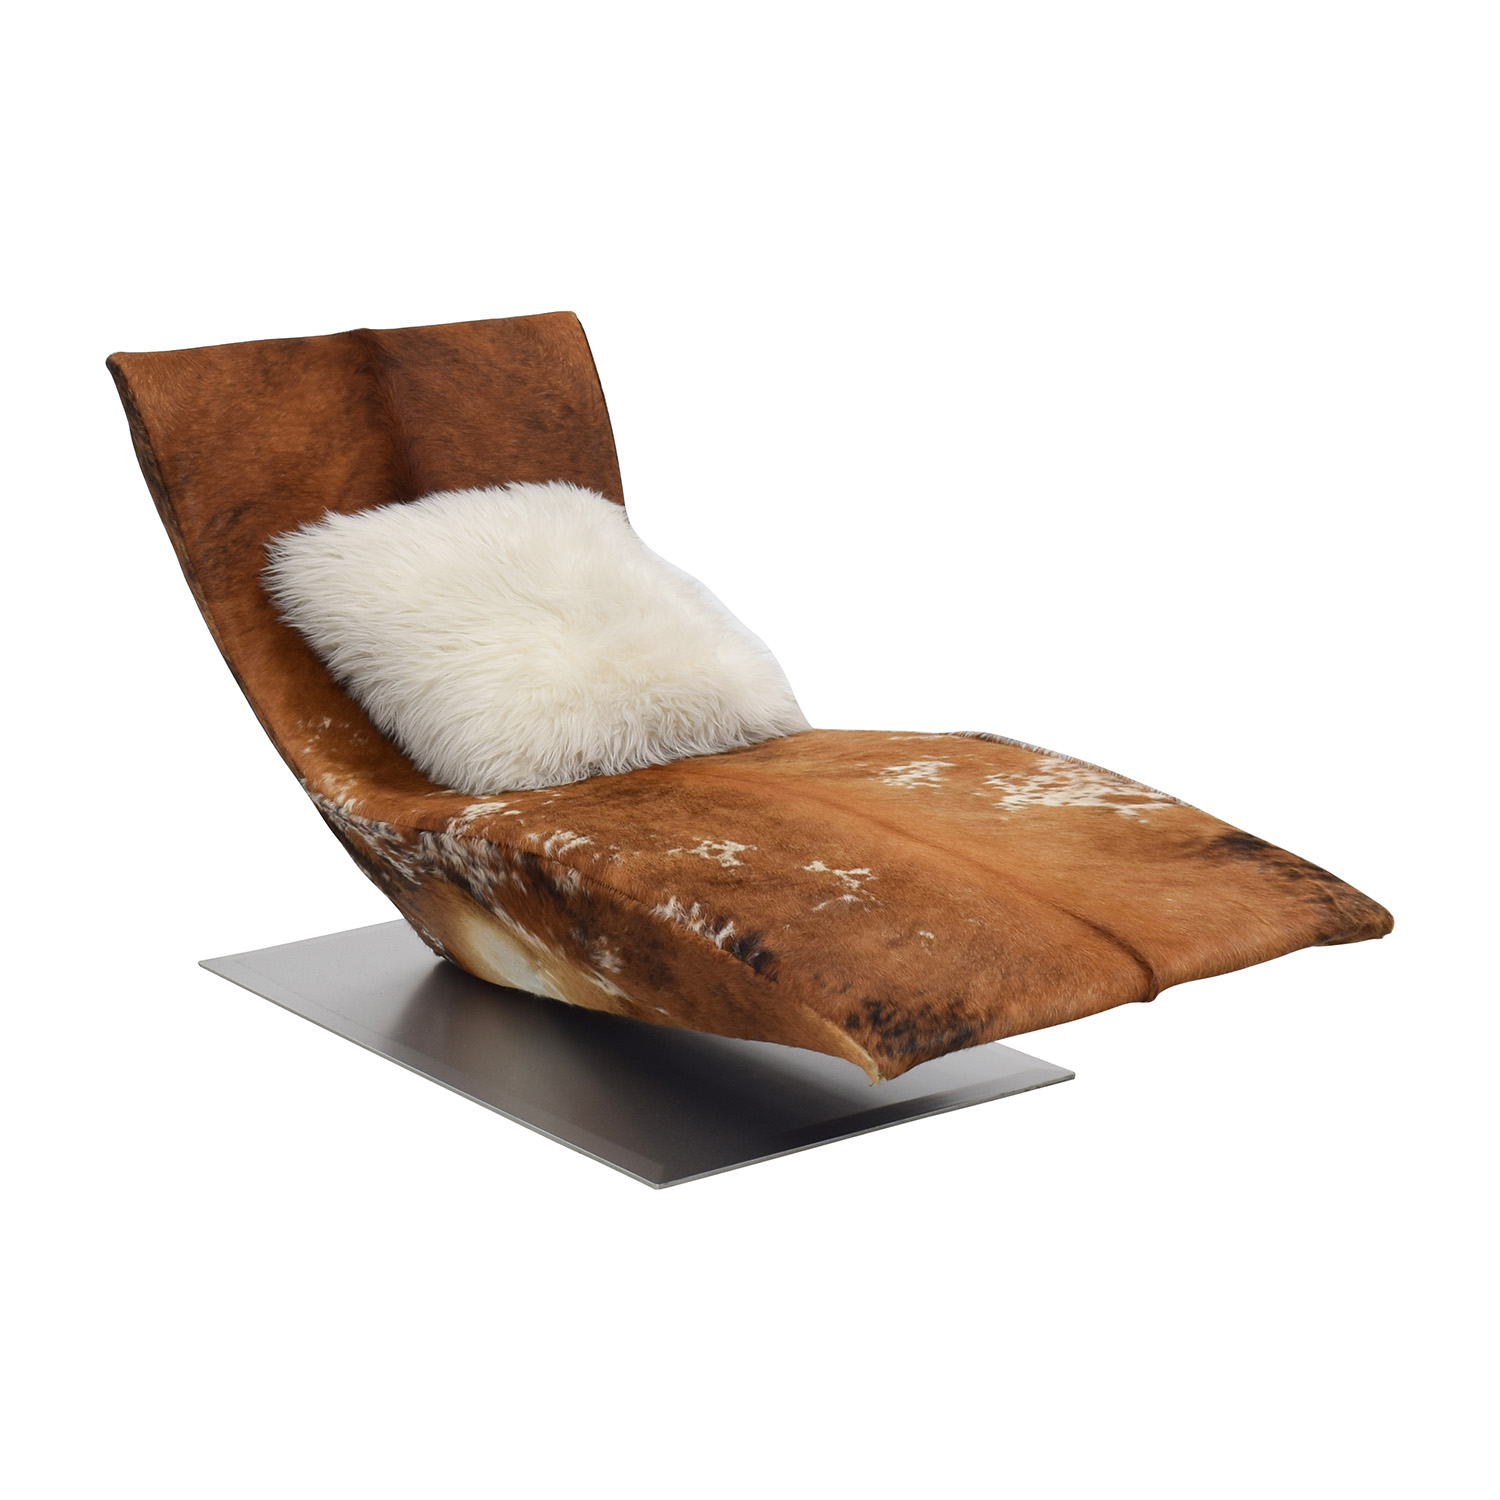 Buy Leather Cow Hide Accent Chaise Chair Accent Chairs ...